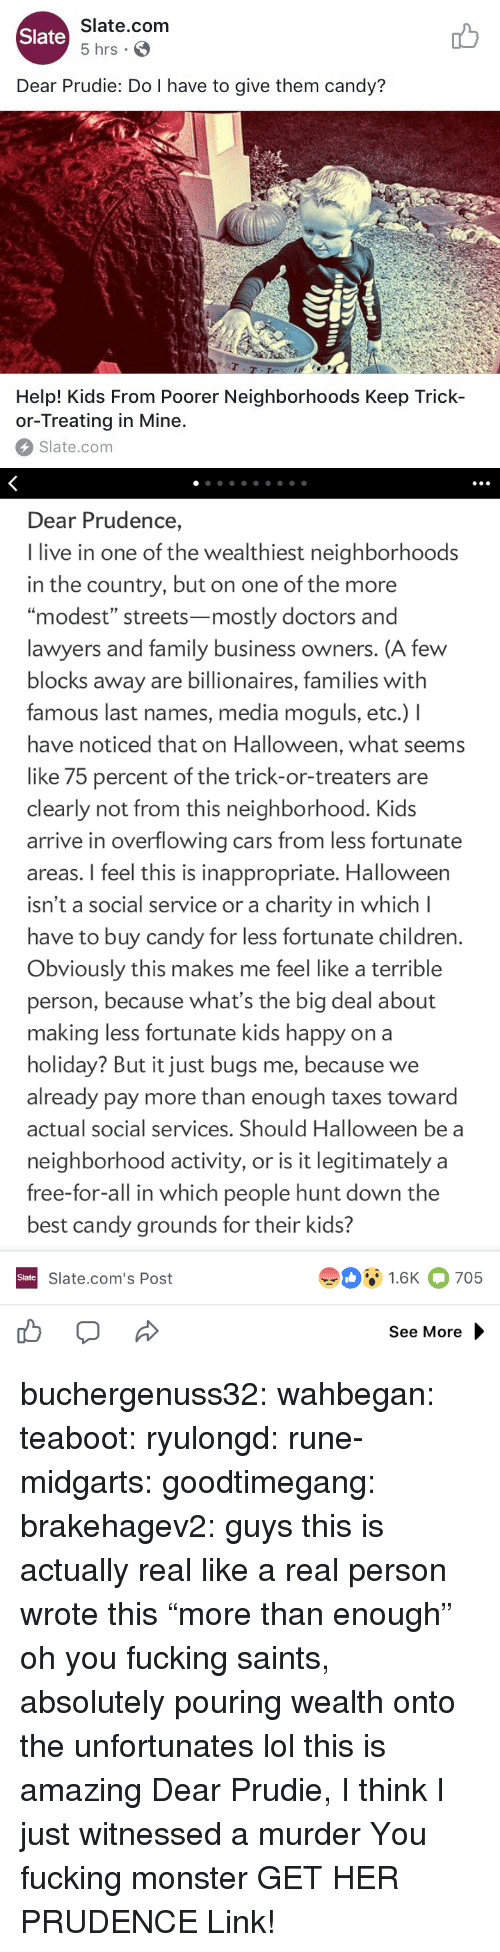 "modest: Slate.com  5 hrs .  Slate  Dear Prudie: Do I have to give them candy?  aT  T-T  Help! Kids From Poorer Neighborhoods Keep Trick-  or-Treating in Mine.  Slate.com   Dear Prudence,  I live in one of the wealthiest neighborhoods  in the country, but on one of the more  ""modest"" streets-mostly doctors and  lawyers and family business owners. (A few  blocks away are billionaires, families with  famous last names, media moguls, etc.) I  have noticed that on Halloween, what seems  like 75 percent of the trick-or-treaters are  clearly not from this neighborhood. Kids  arrive in overflowing cars from less fortunate  areas. I feel this is inappropriate. Halloween  isn't a social service or a charity in which l  have to buy candy for less fortunate children  Obviously this makes me feel like a terrible  person, because what's the big deal about  making less fortunate kids happy on a  holiday? But it just bugs me, because we  already pay more than enough taxes toward  actual social services. Should Halloween be a  neighborhood activity, or is it legitimately a  free-for-all in which people hunt down the  best candy grounds for their kids?  91.6K 705  Slate  Slate.com's Post  See More buchergenuss32:  wahbegan: teaboot:  ryulongd:  rune-midgarts:  goodtimegang:  brakehagev2:  guys this is actually real like a real person wrote this  ""more than enough"" oh you fucking saints, absolutely pouring wealth onto the unfortunates   lol this is amazing   Dear Prudie, I think I just witnessed a murder  You fucking monster  GET HER PRUDENCE  Link!"